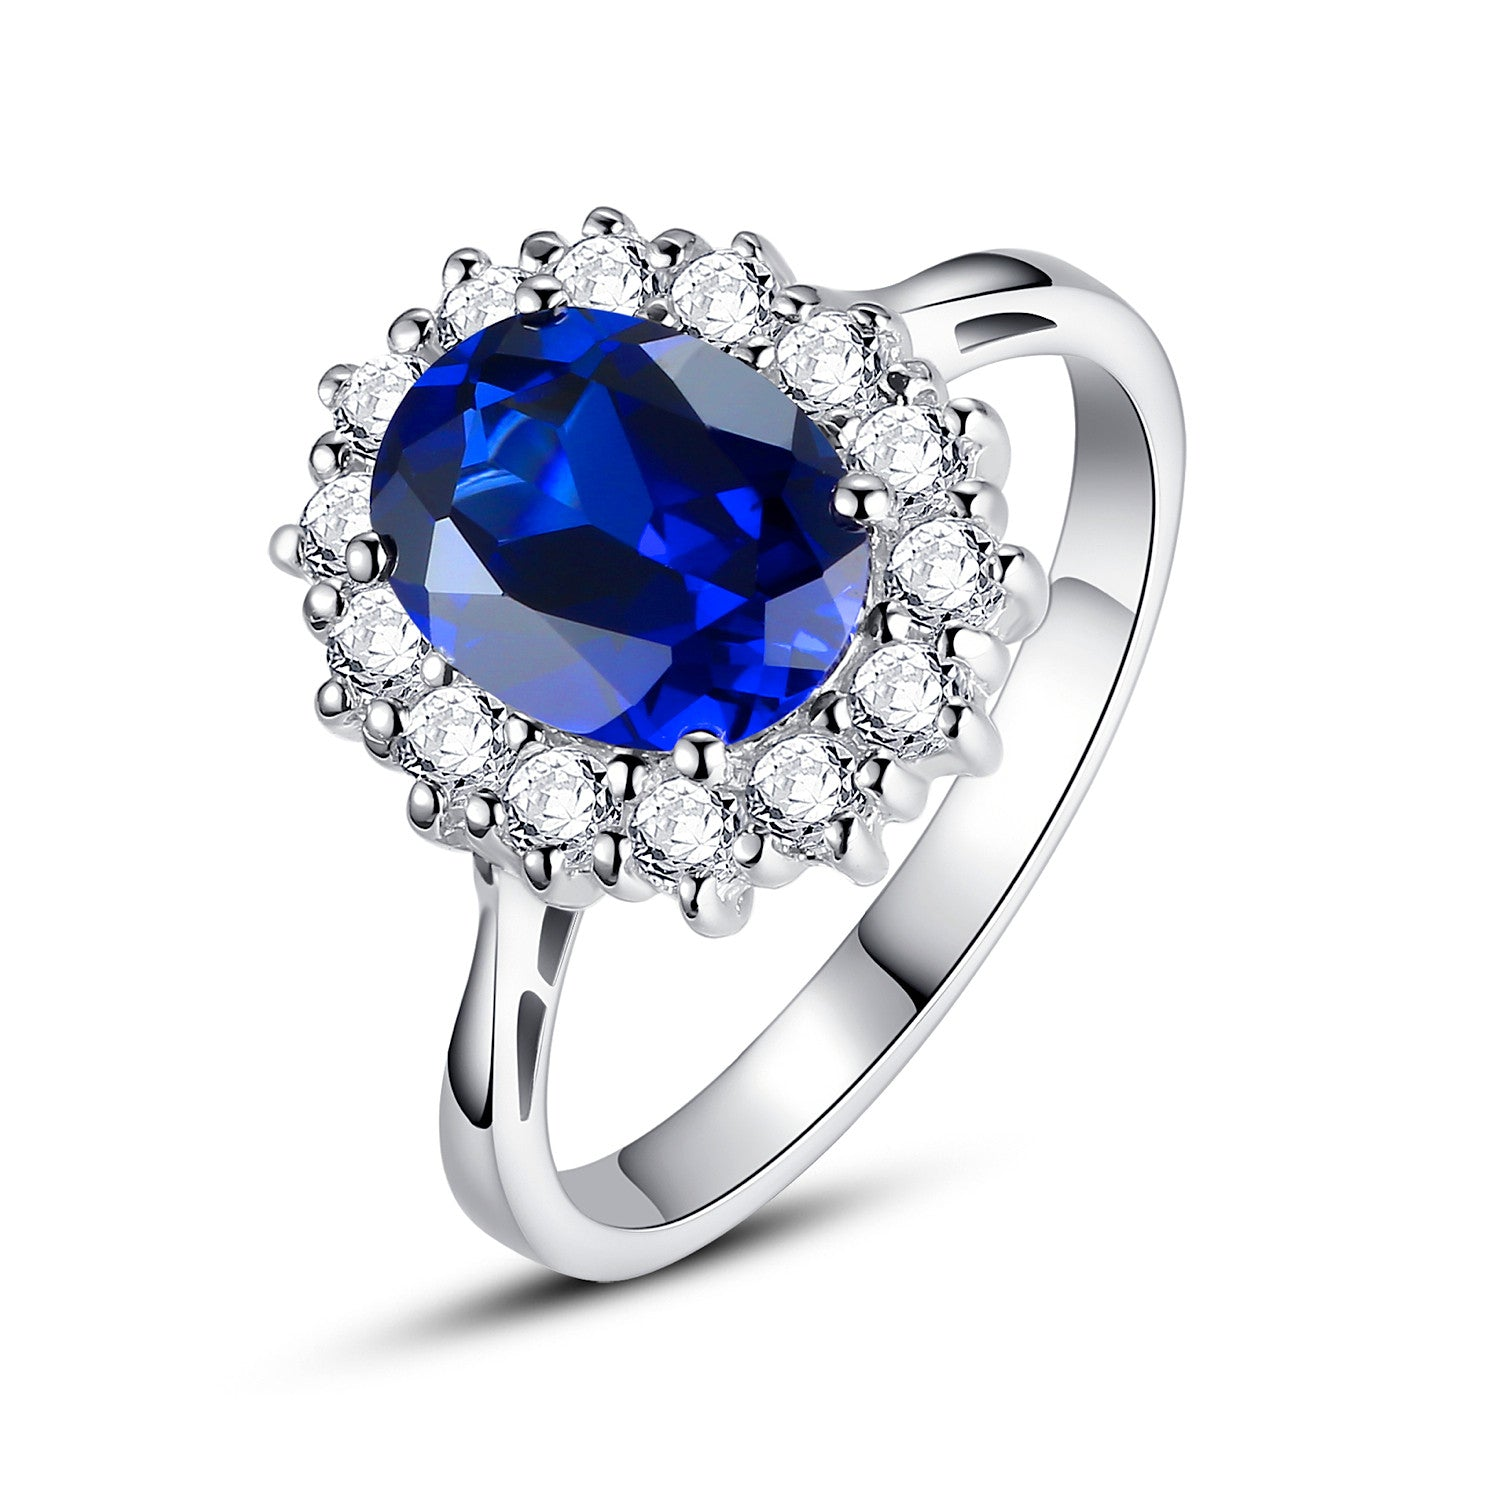 pin created rings blue engagement ring white silver lab sterling sapphire stone